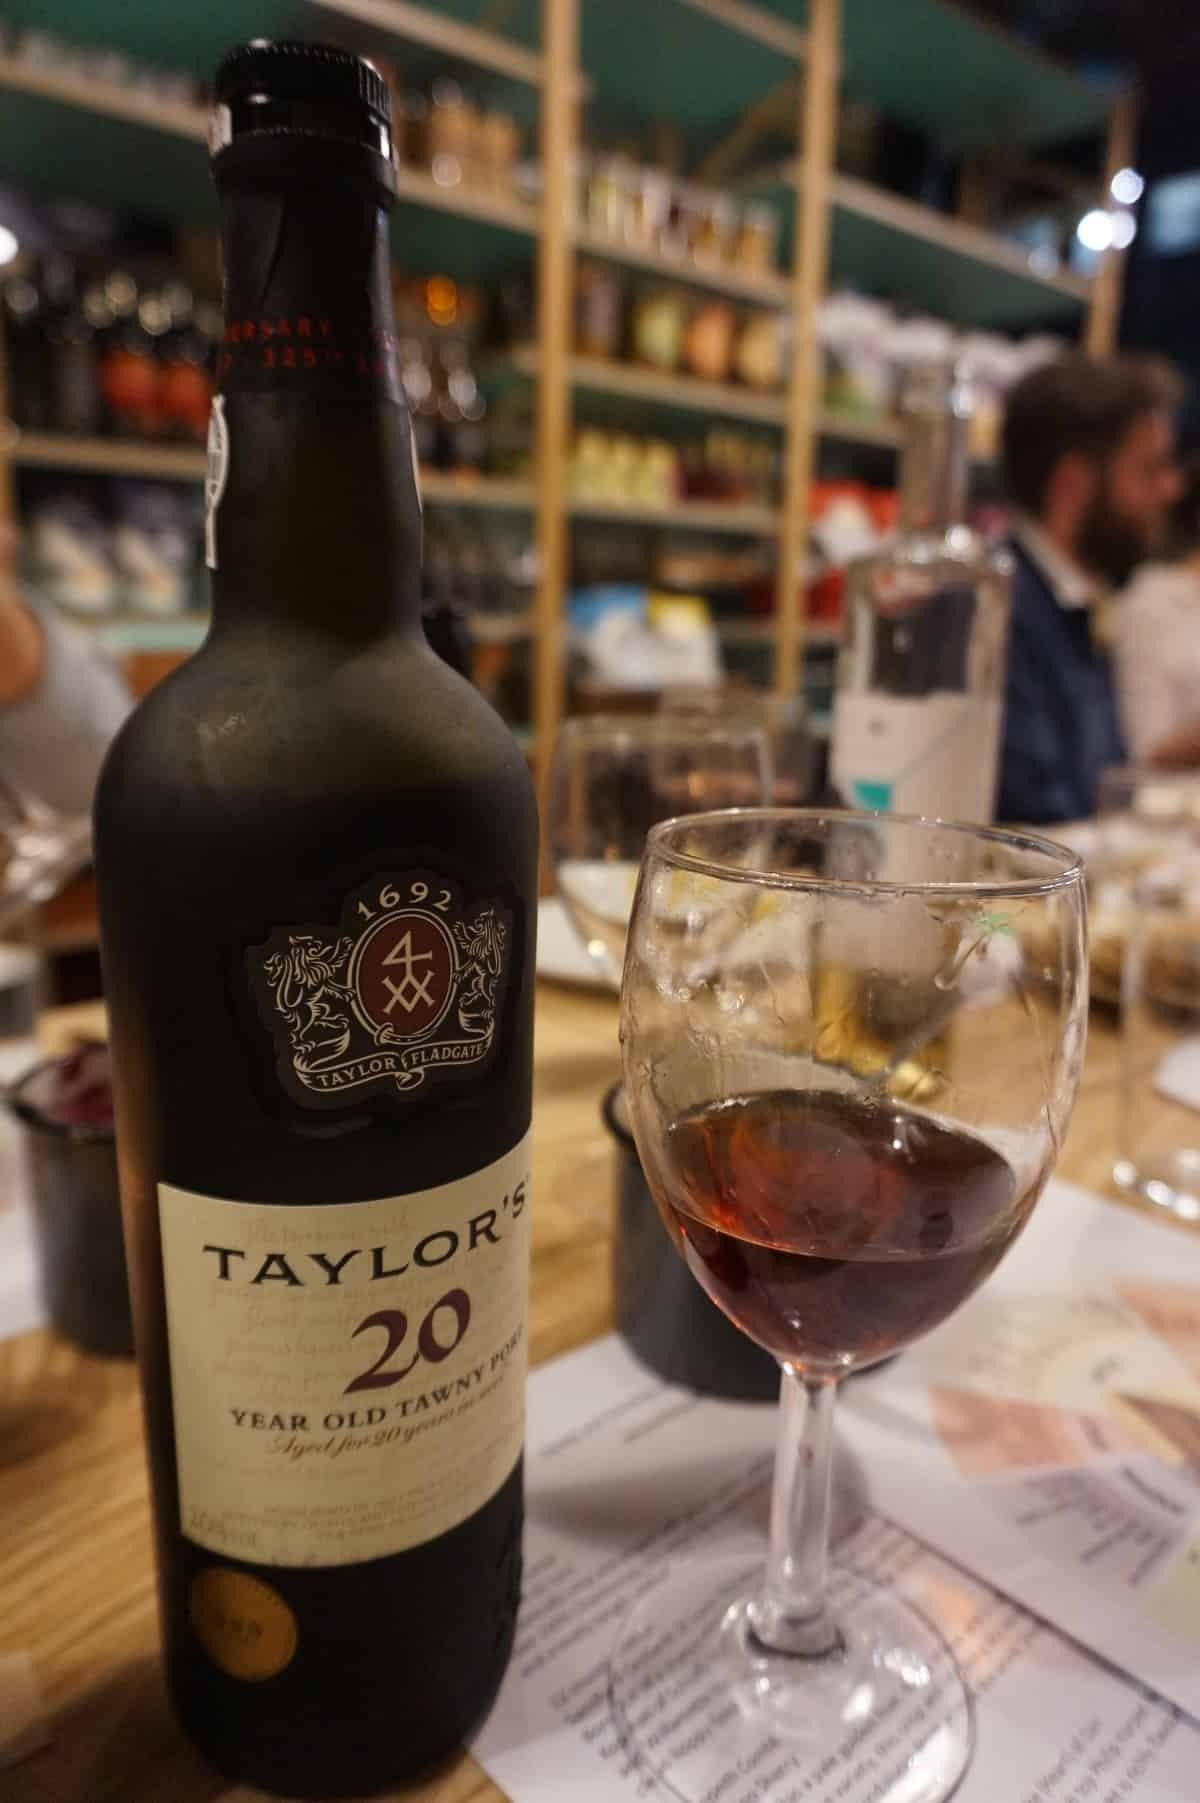 20-year-old Taylors Port